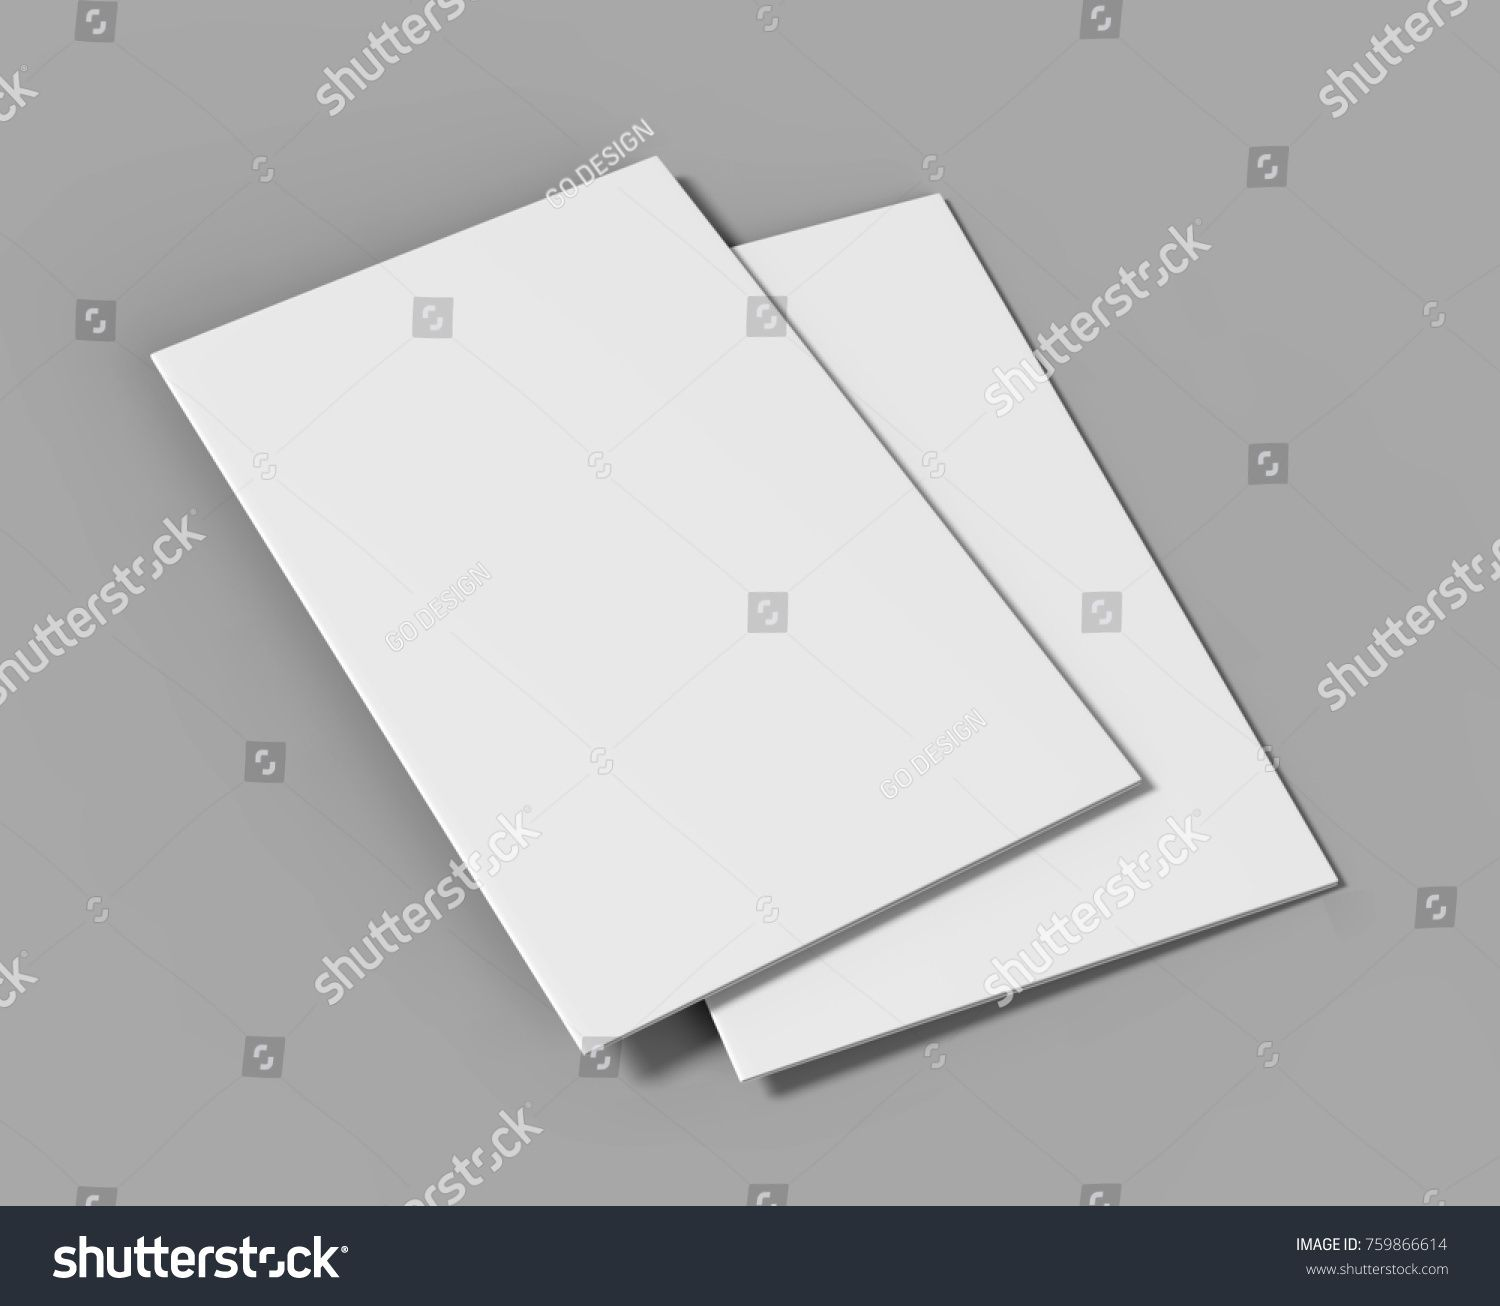 White Template | A3 Half Fold Brochure Blank White Template For Mock Up And